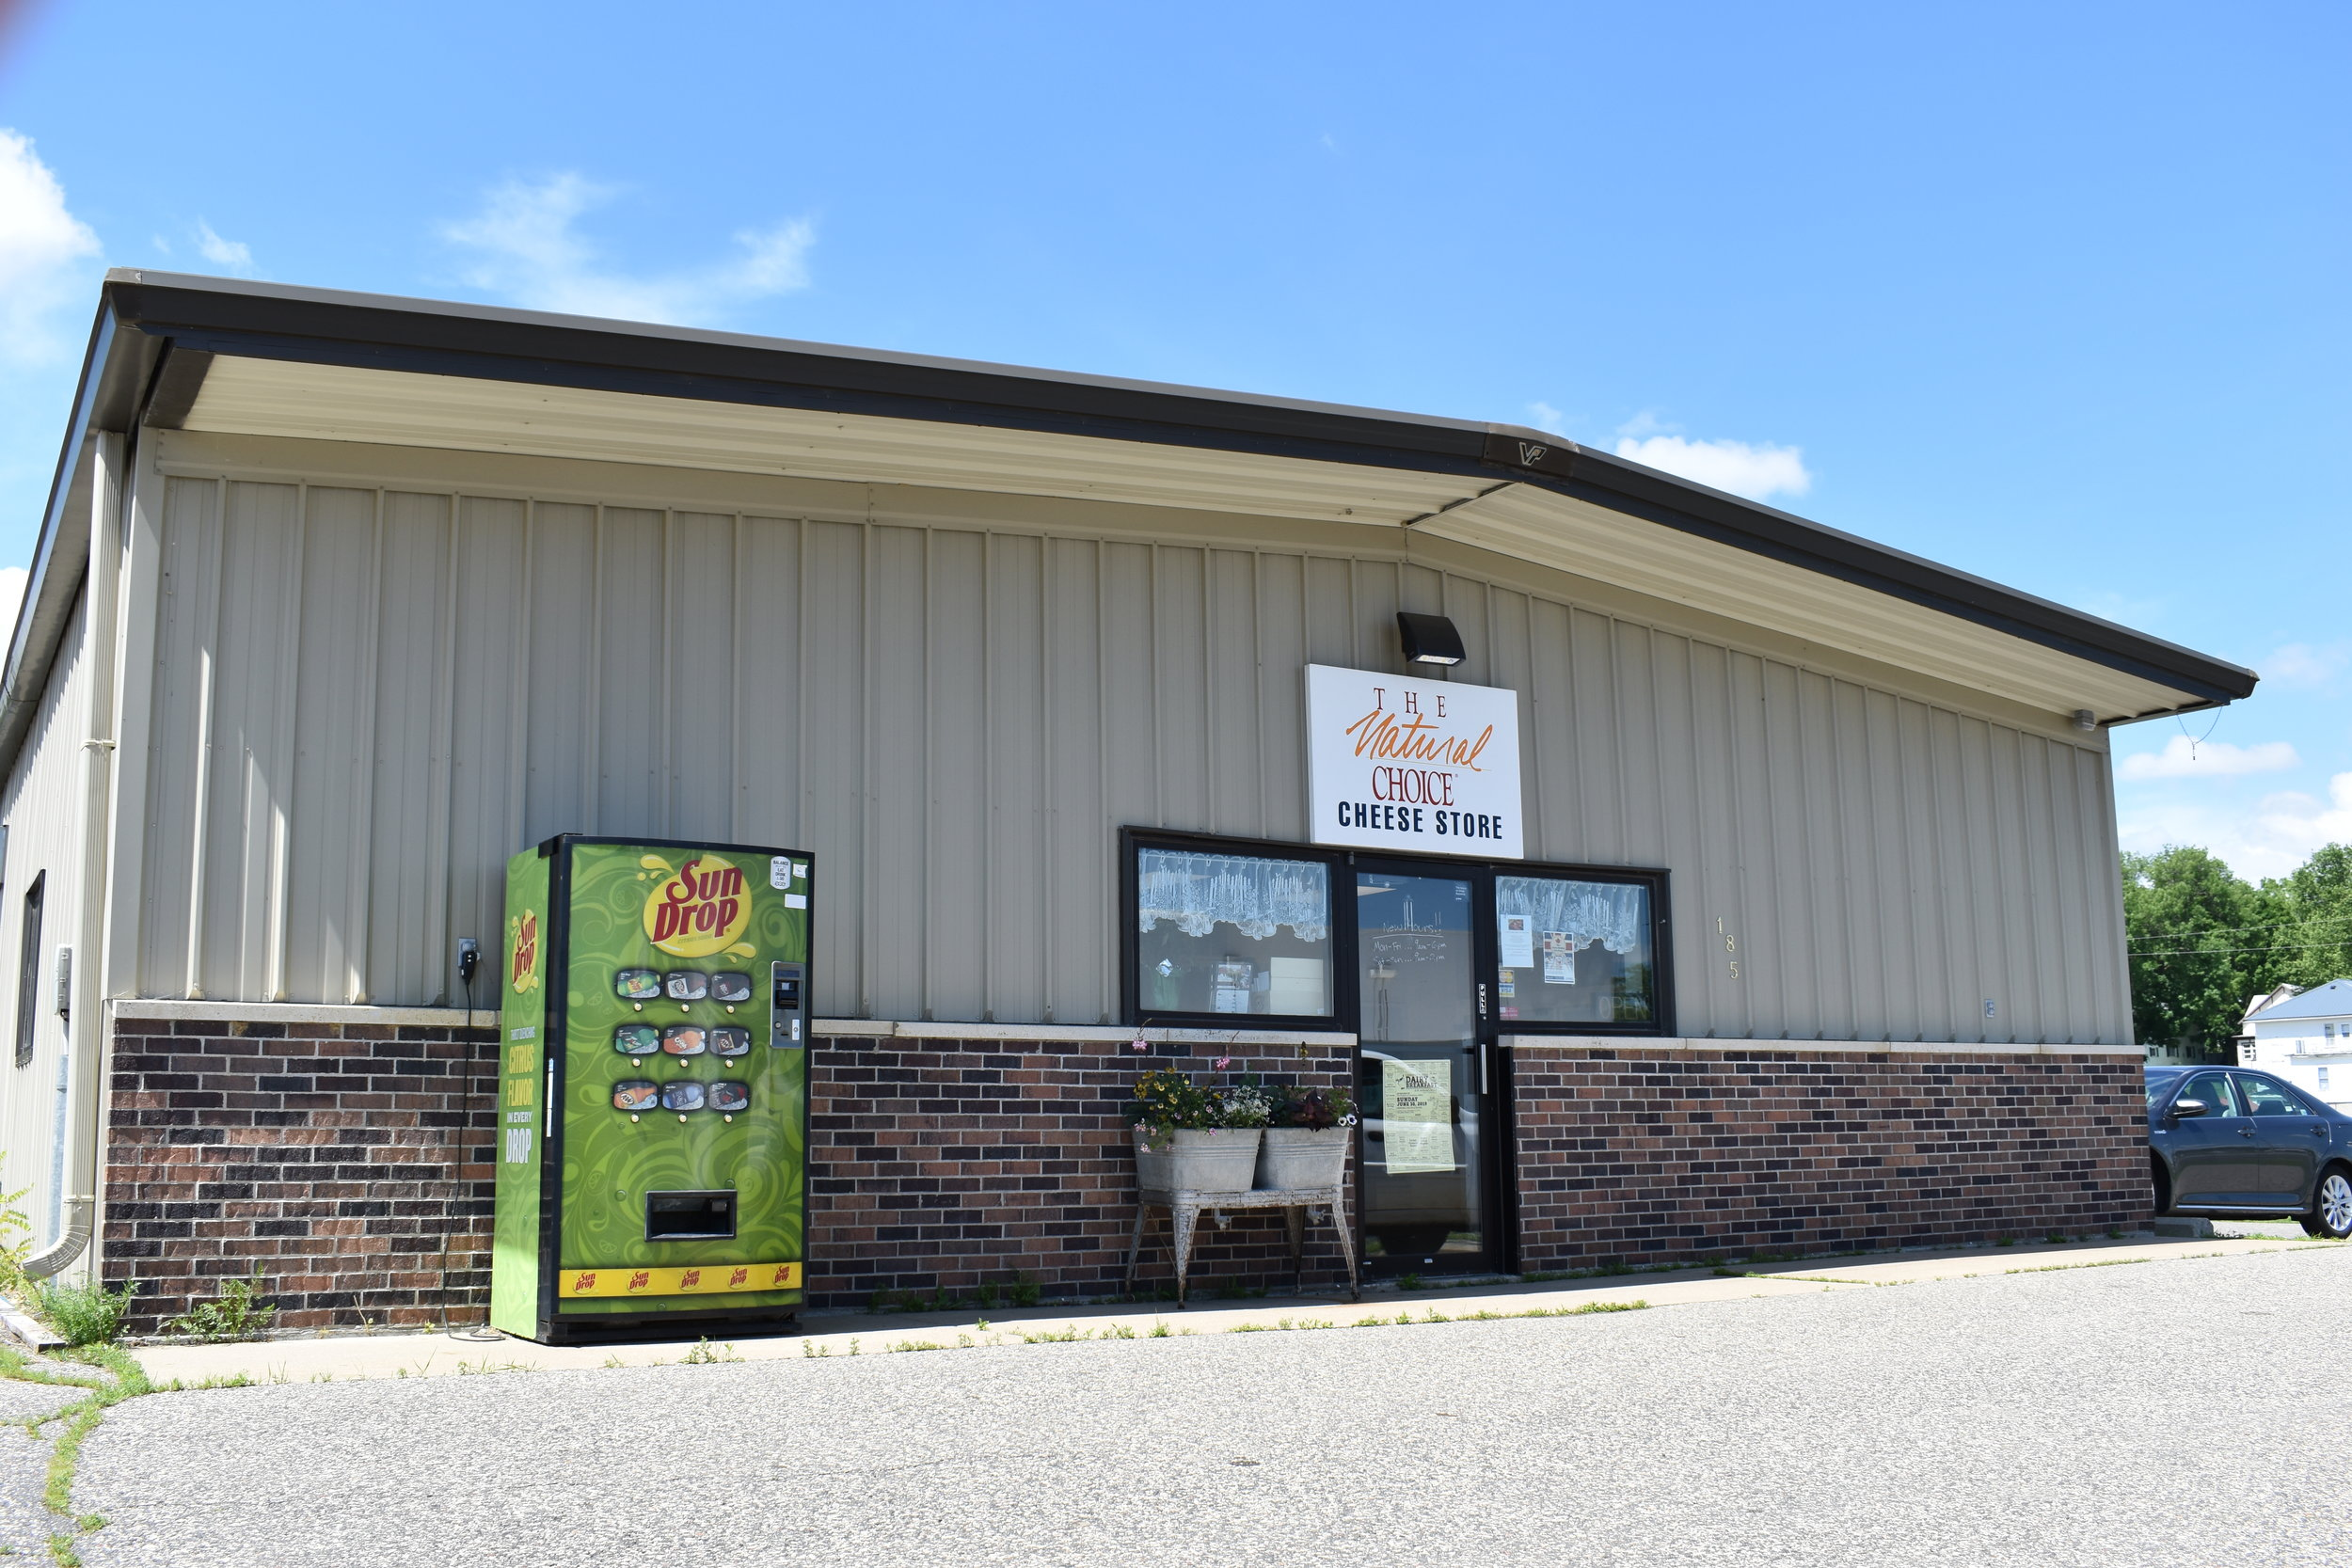 The Cheese Store and More located at 185 Madison St. in Hillsboro, Wisconsin